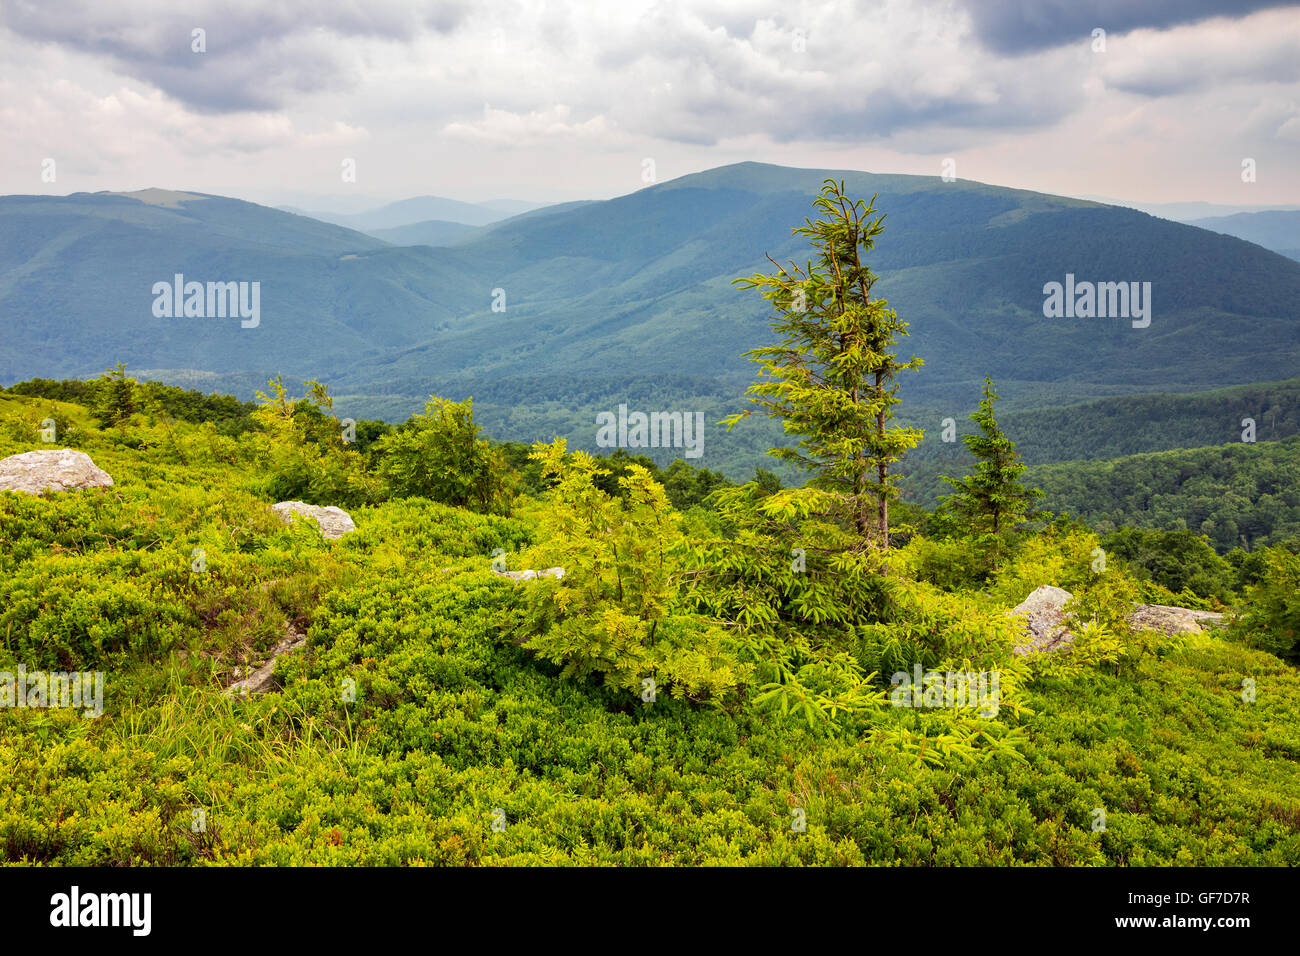 lonely conifer tree and stone on the edge of hillside with path in the grass on top of high mountain range Stock Photo